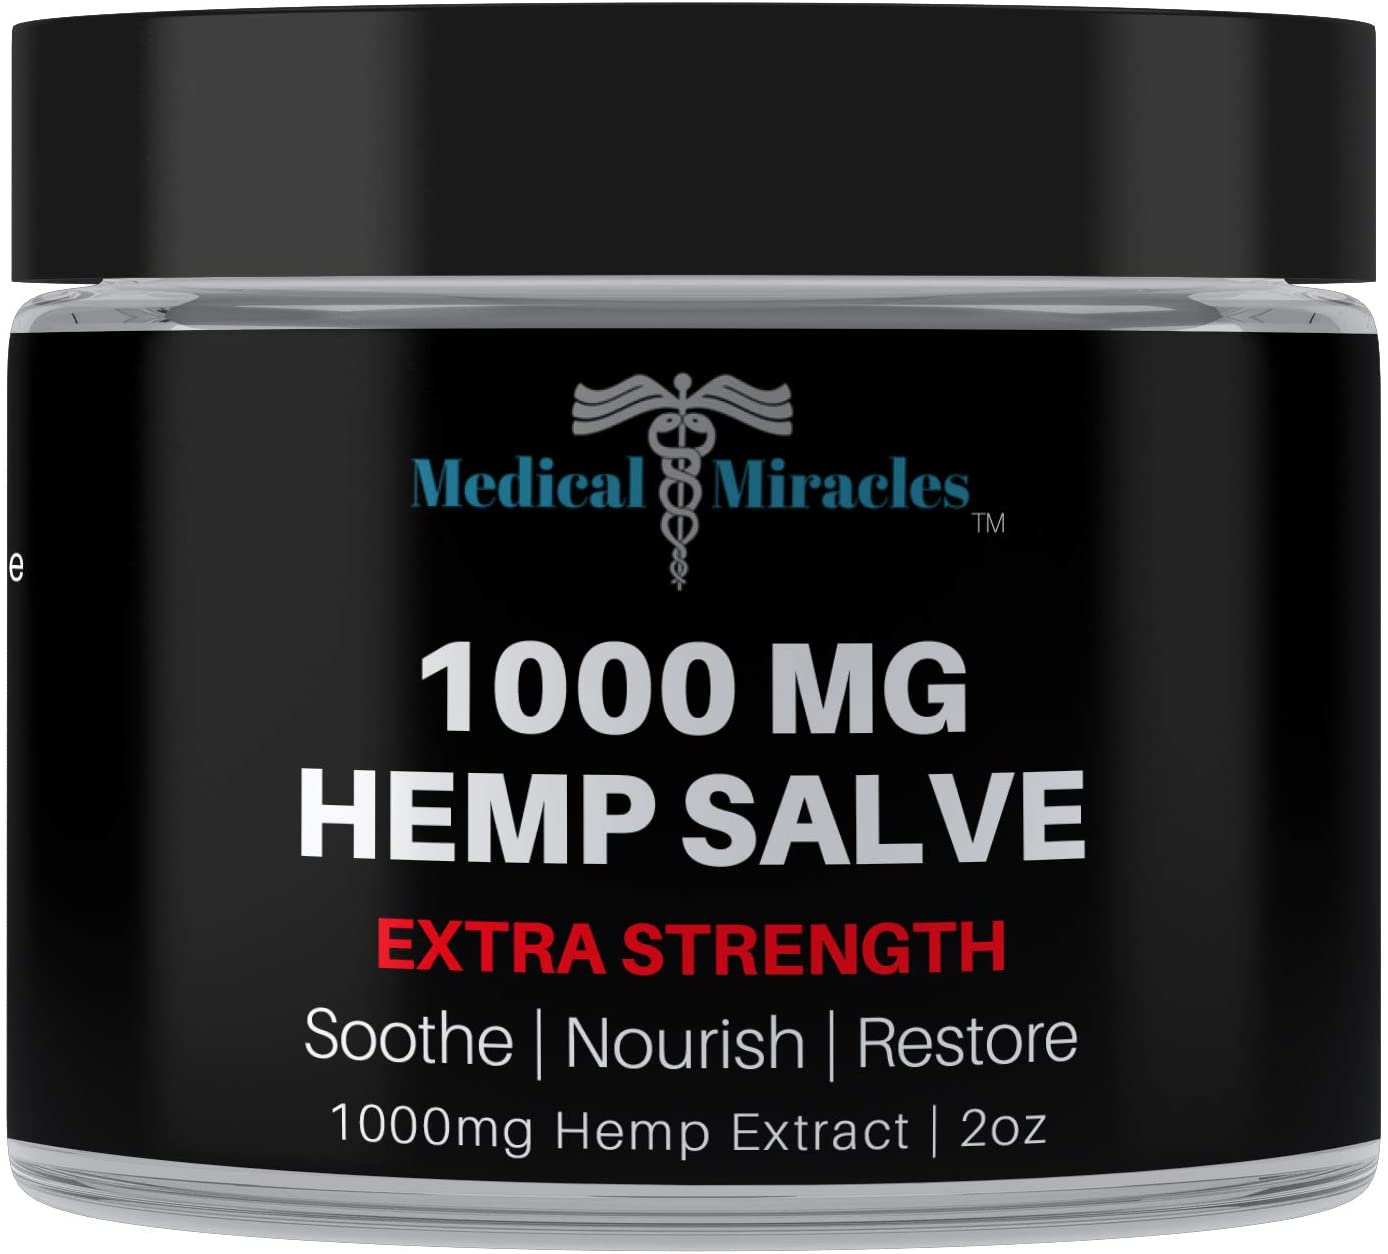 Medical Miracles Hemp 1000 Mg Extra Strength Healing Salve | 100% Natural Cream Relieves Inflammation, Muscle, Joint, Knee, Nerve, Arthritis Aches & Pain | Fast Acting, Maximum Power, Quick Relief